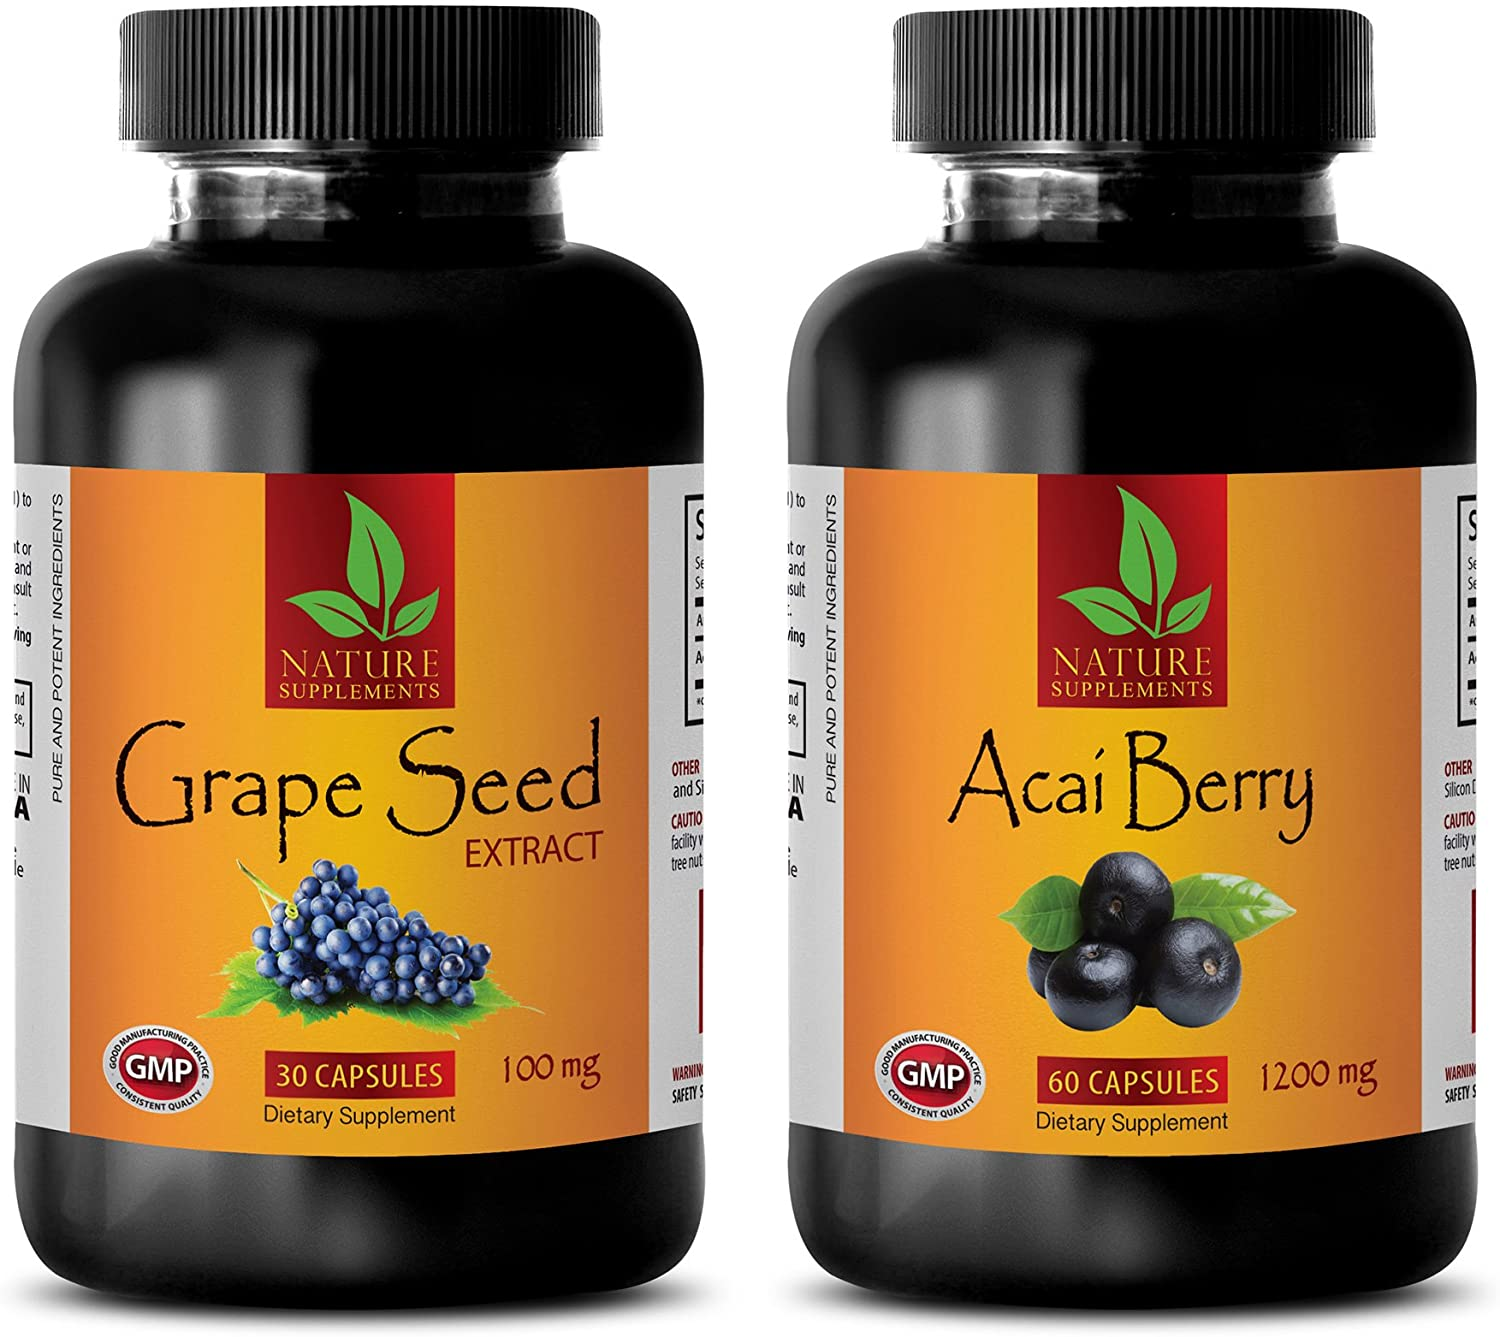 antiaging Health - ACAI Berry - Grape Seed Extract - acai Berry Diet - (2 Bottles Combo)